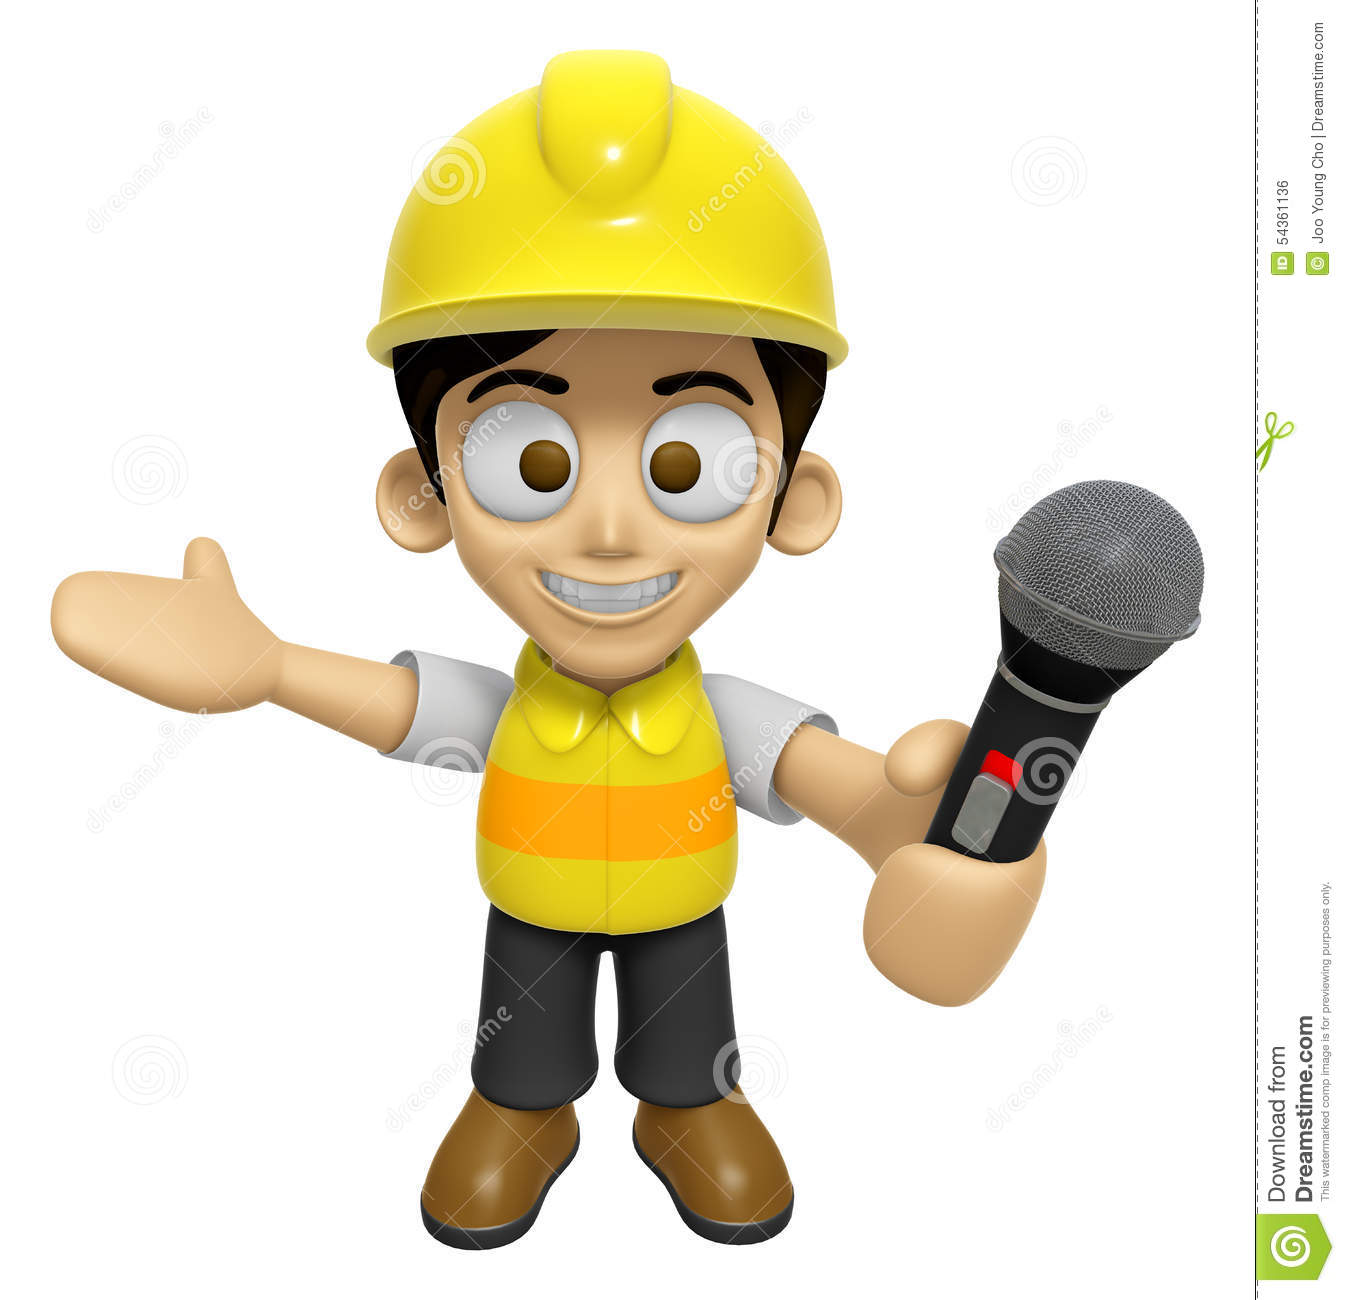 Character Design Careers : D construction worker man mascot the hand is holding a